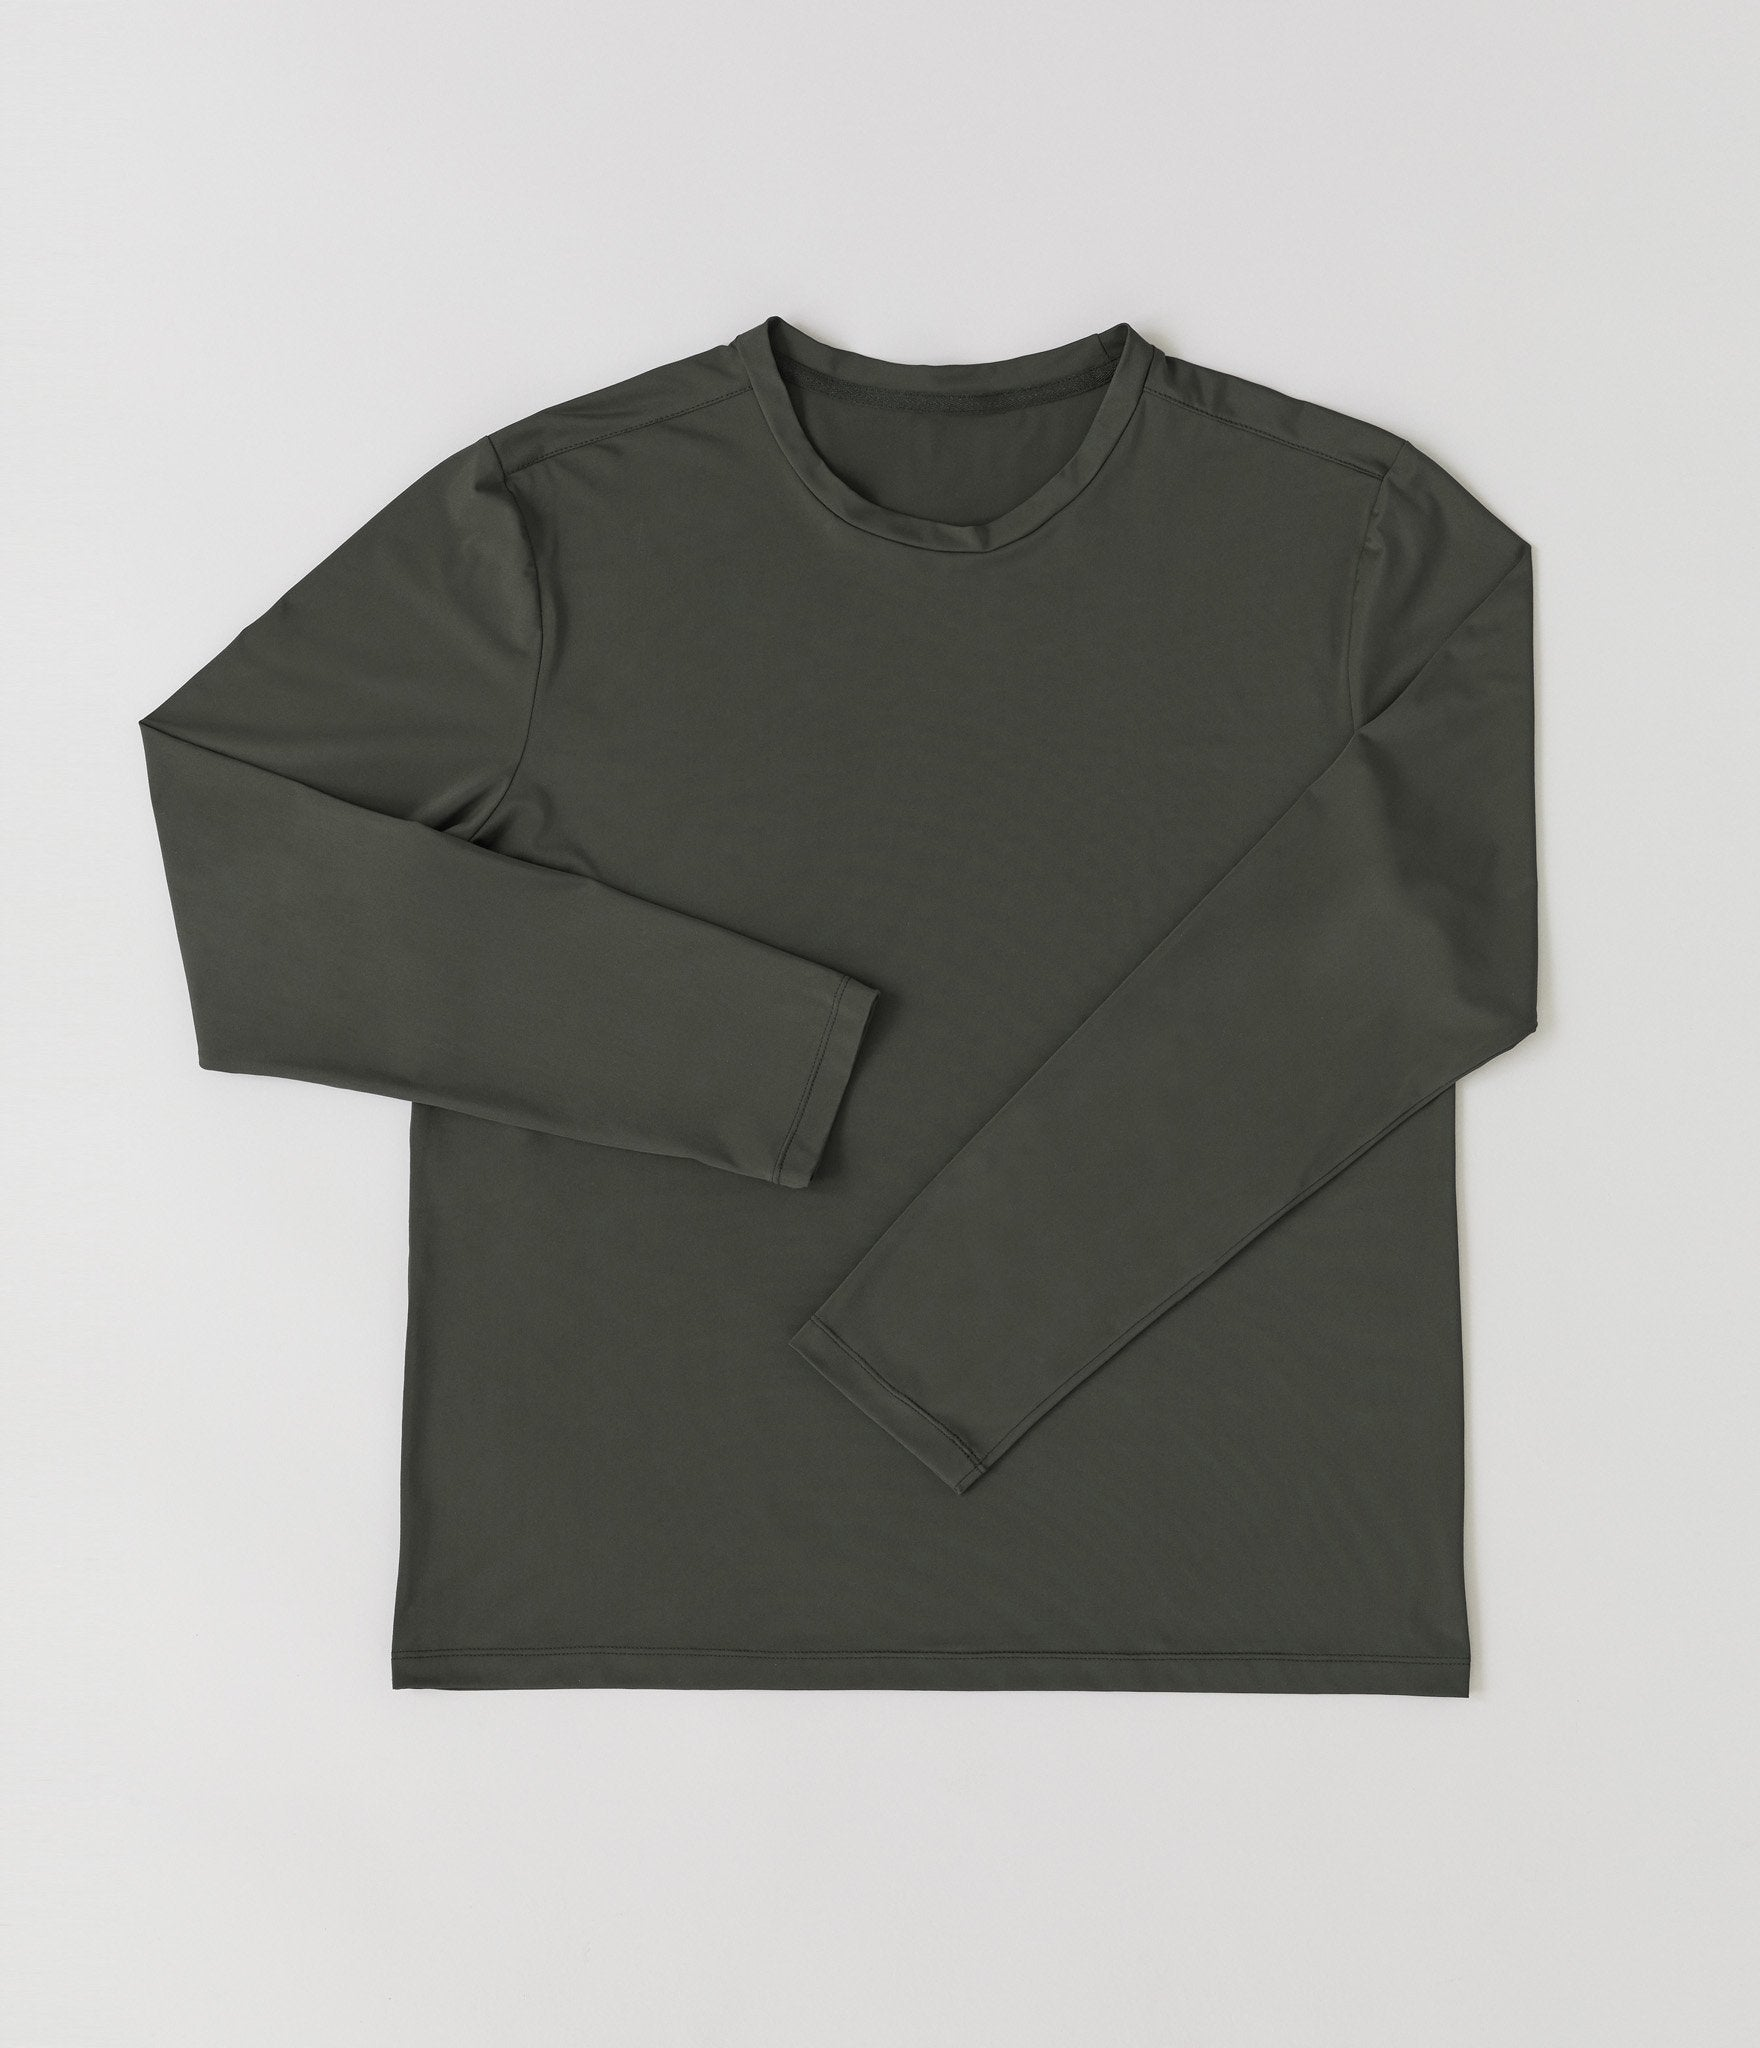 Rome long sleeve t-shirt</br>Khaki green